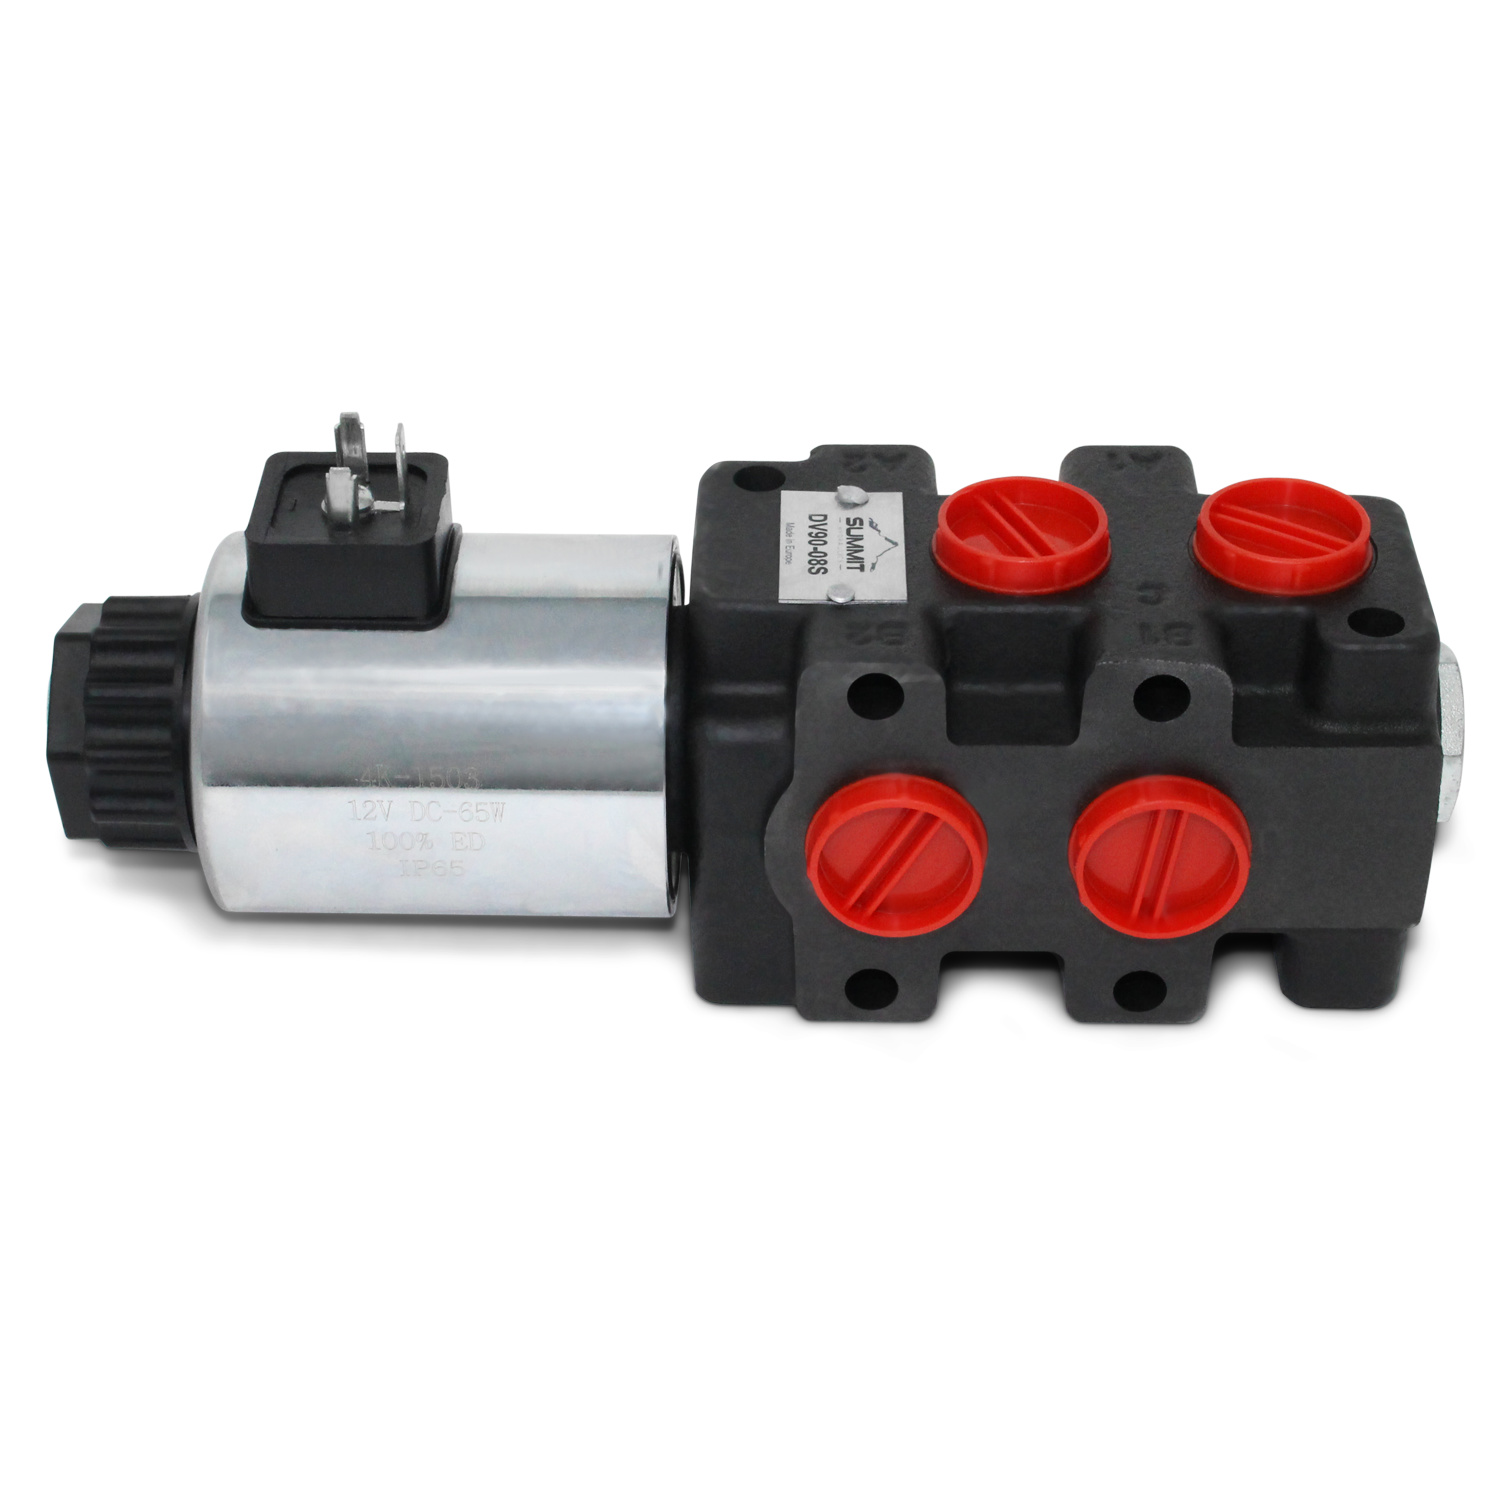 hight resolution of din plug wiring diagram home hydraulic multipliers hydraulic diverter valves